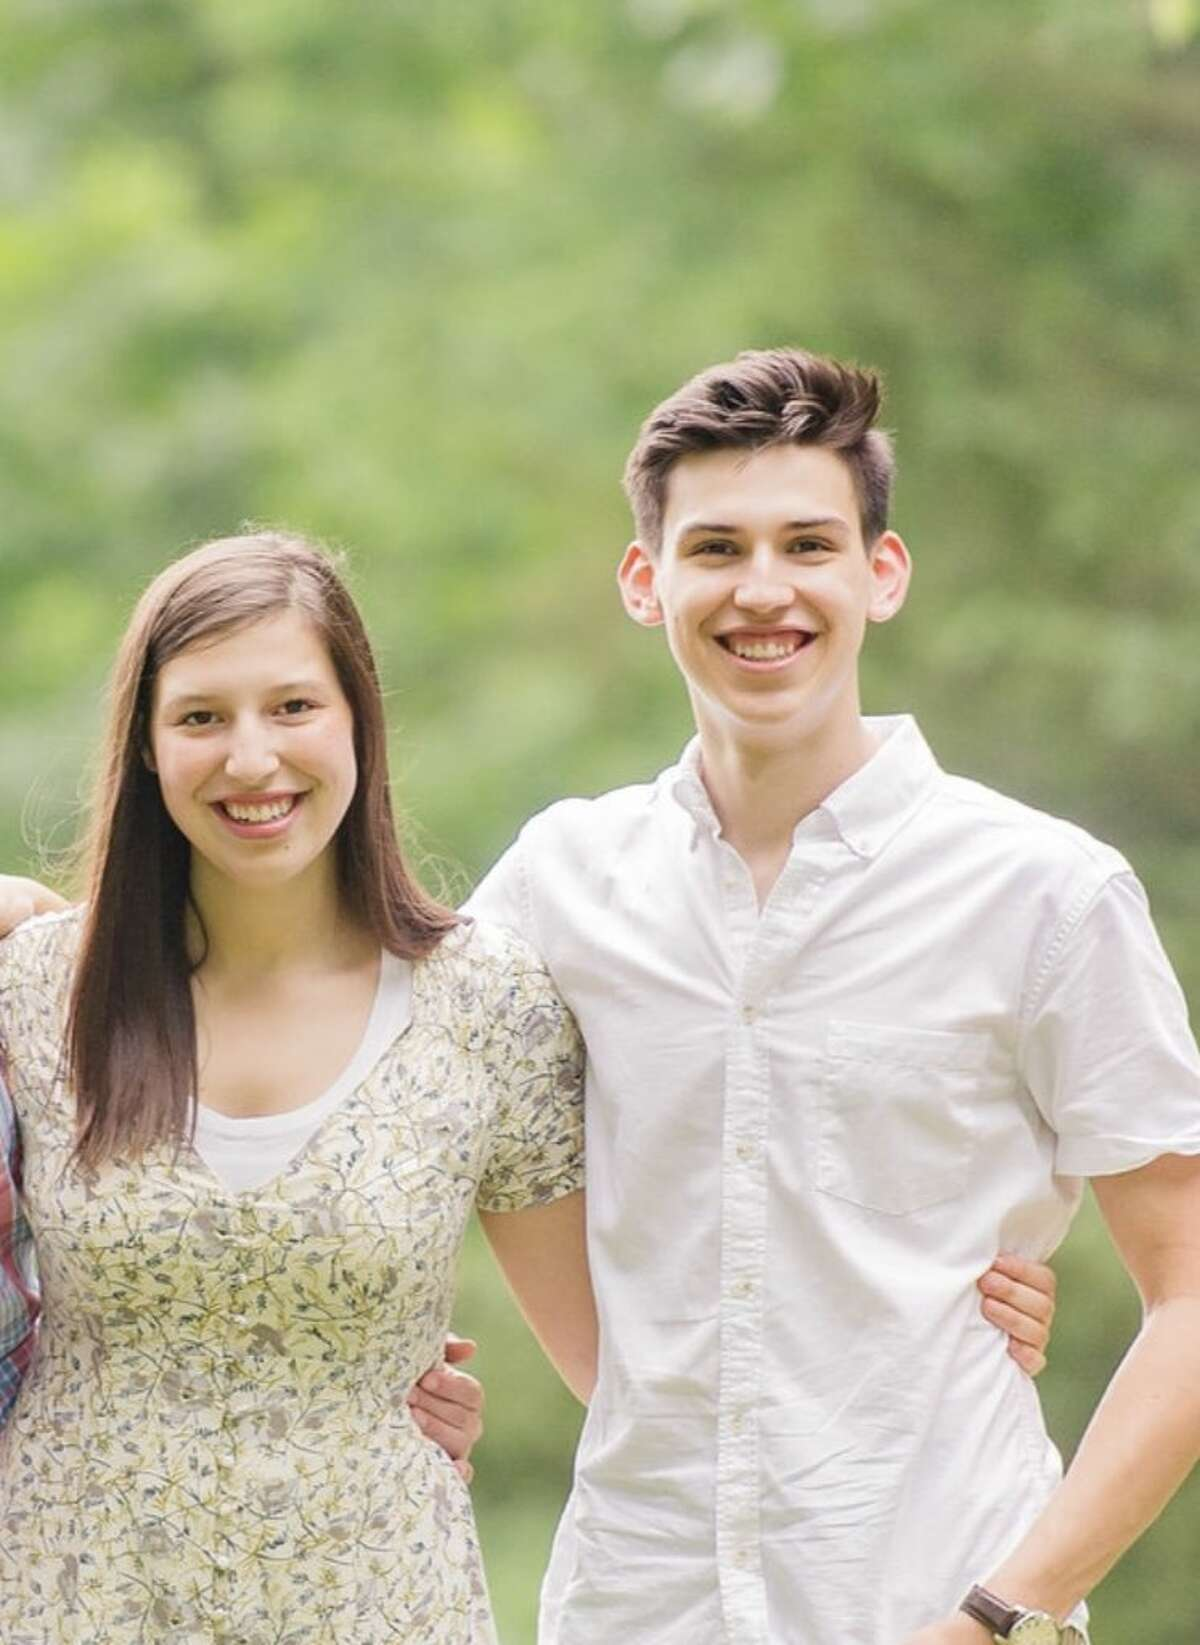 Charlotte and Harry Nelson are graduates of Ridgefield High School and members of the Church of Jesus Christ of Latter-day Saints. Charlotte, who graduated RHS in 2016, has served her missionary trip in Kazakhstan and Russia. Harry, a RHS class of 2018 graduate, will be going to Madrid, Spain for his mission assignment.